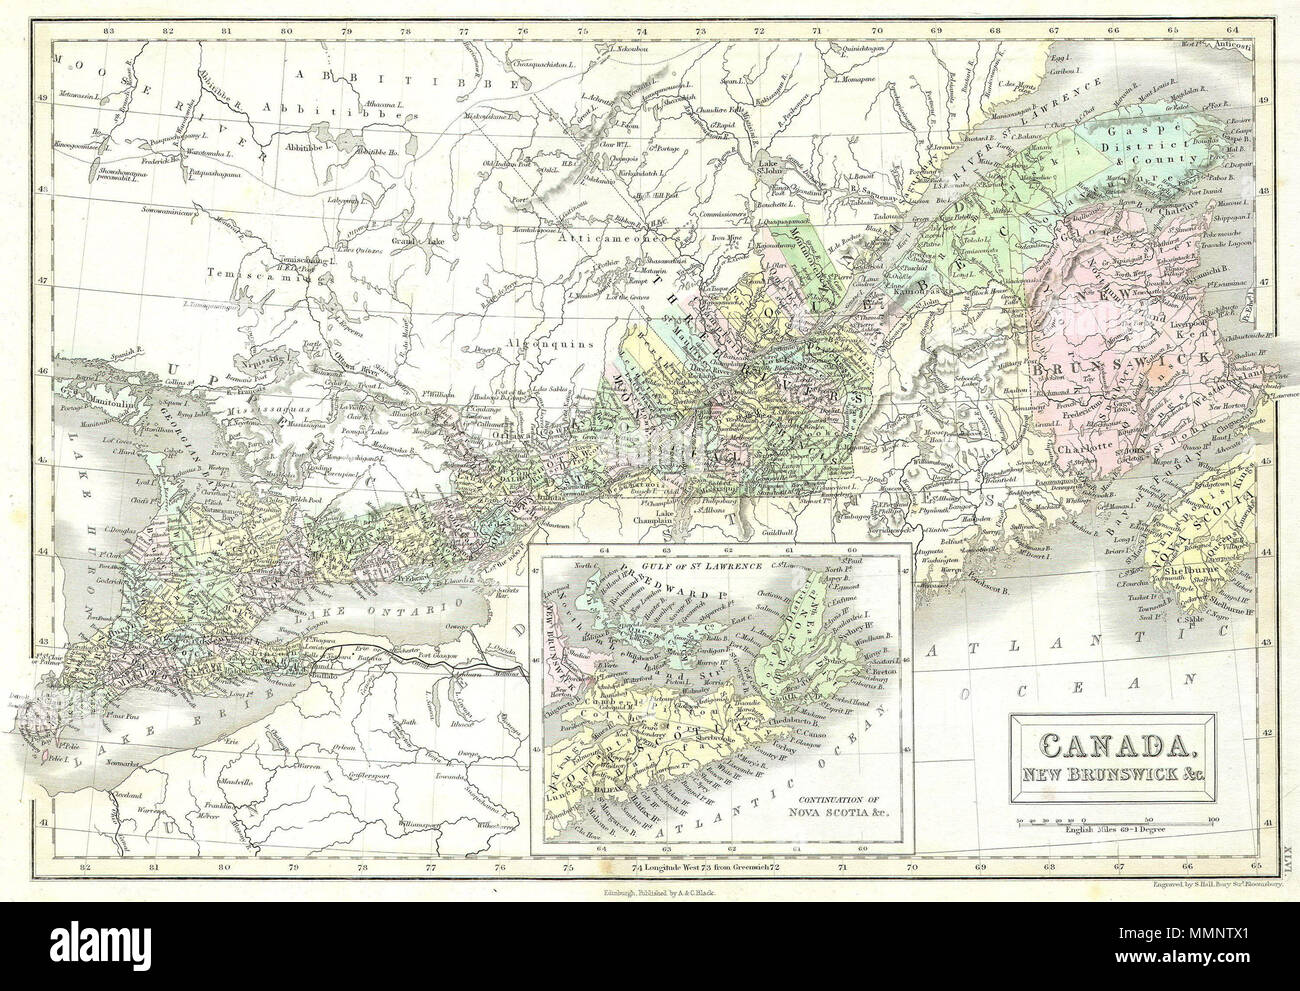 Map Of Eastern Canada Colors English: This is a fascinating 1851 hand colored map of Eastern